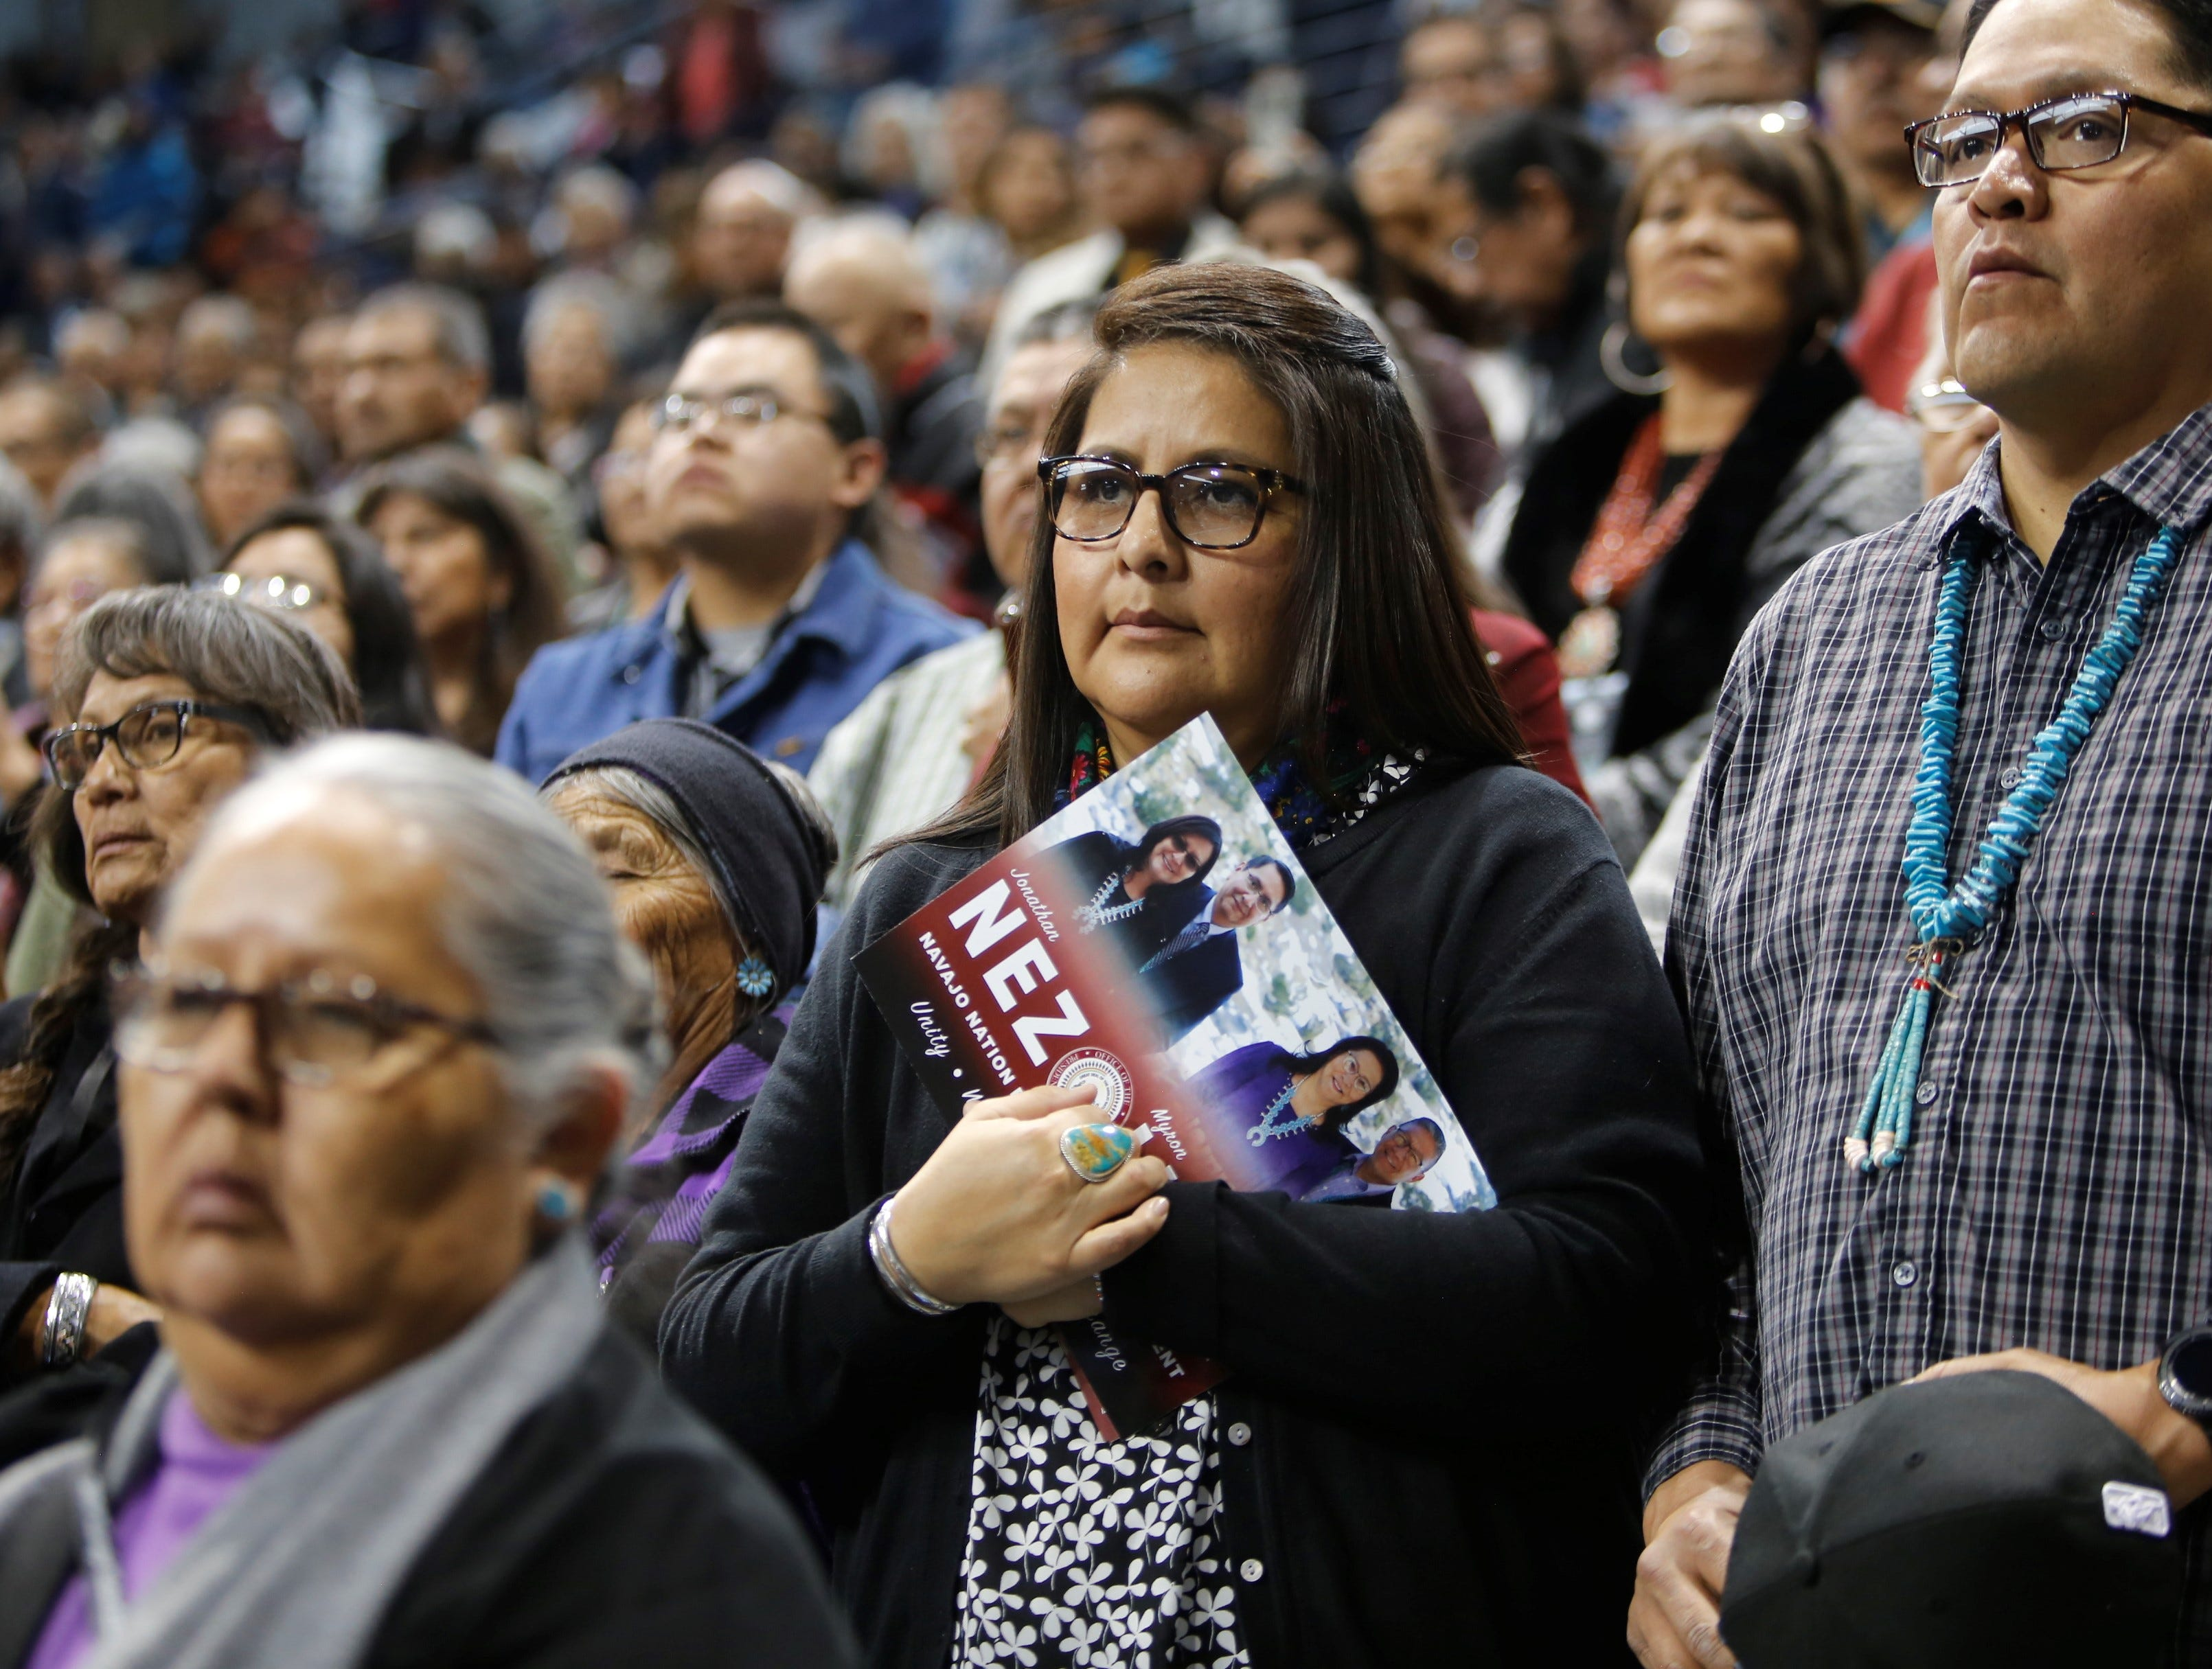 Charissa Benn, center, was among hundreds of tribal members who attended Tuesday's inauguration at the Bee Hółdzil Fighting Scouts Events Center in Fort Defiance, Ariz.